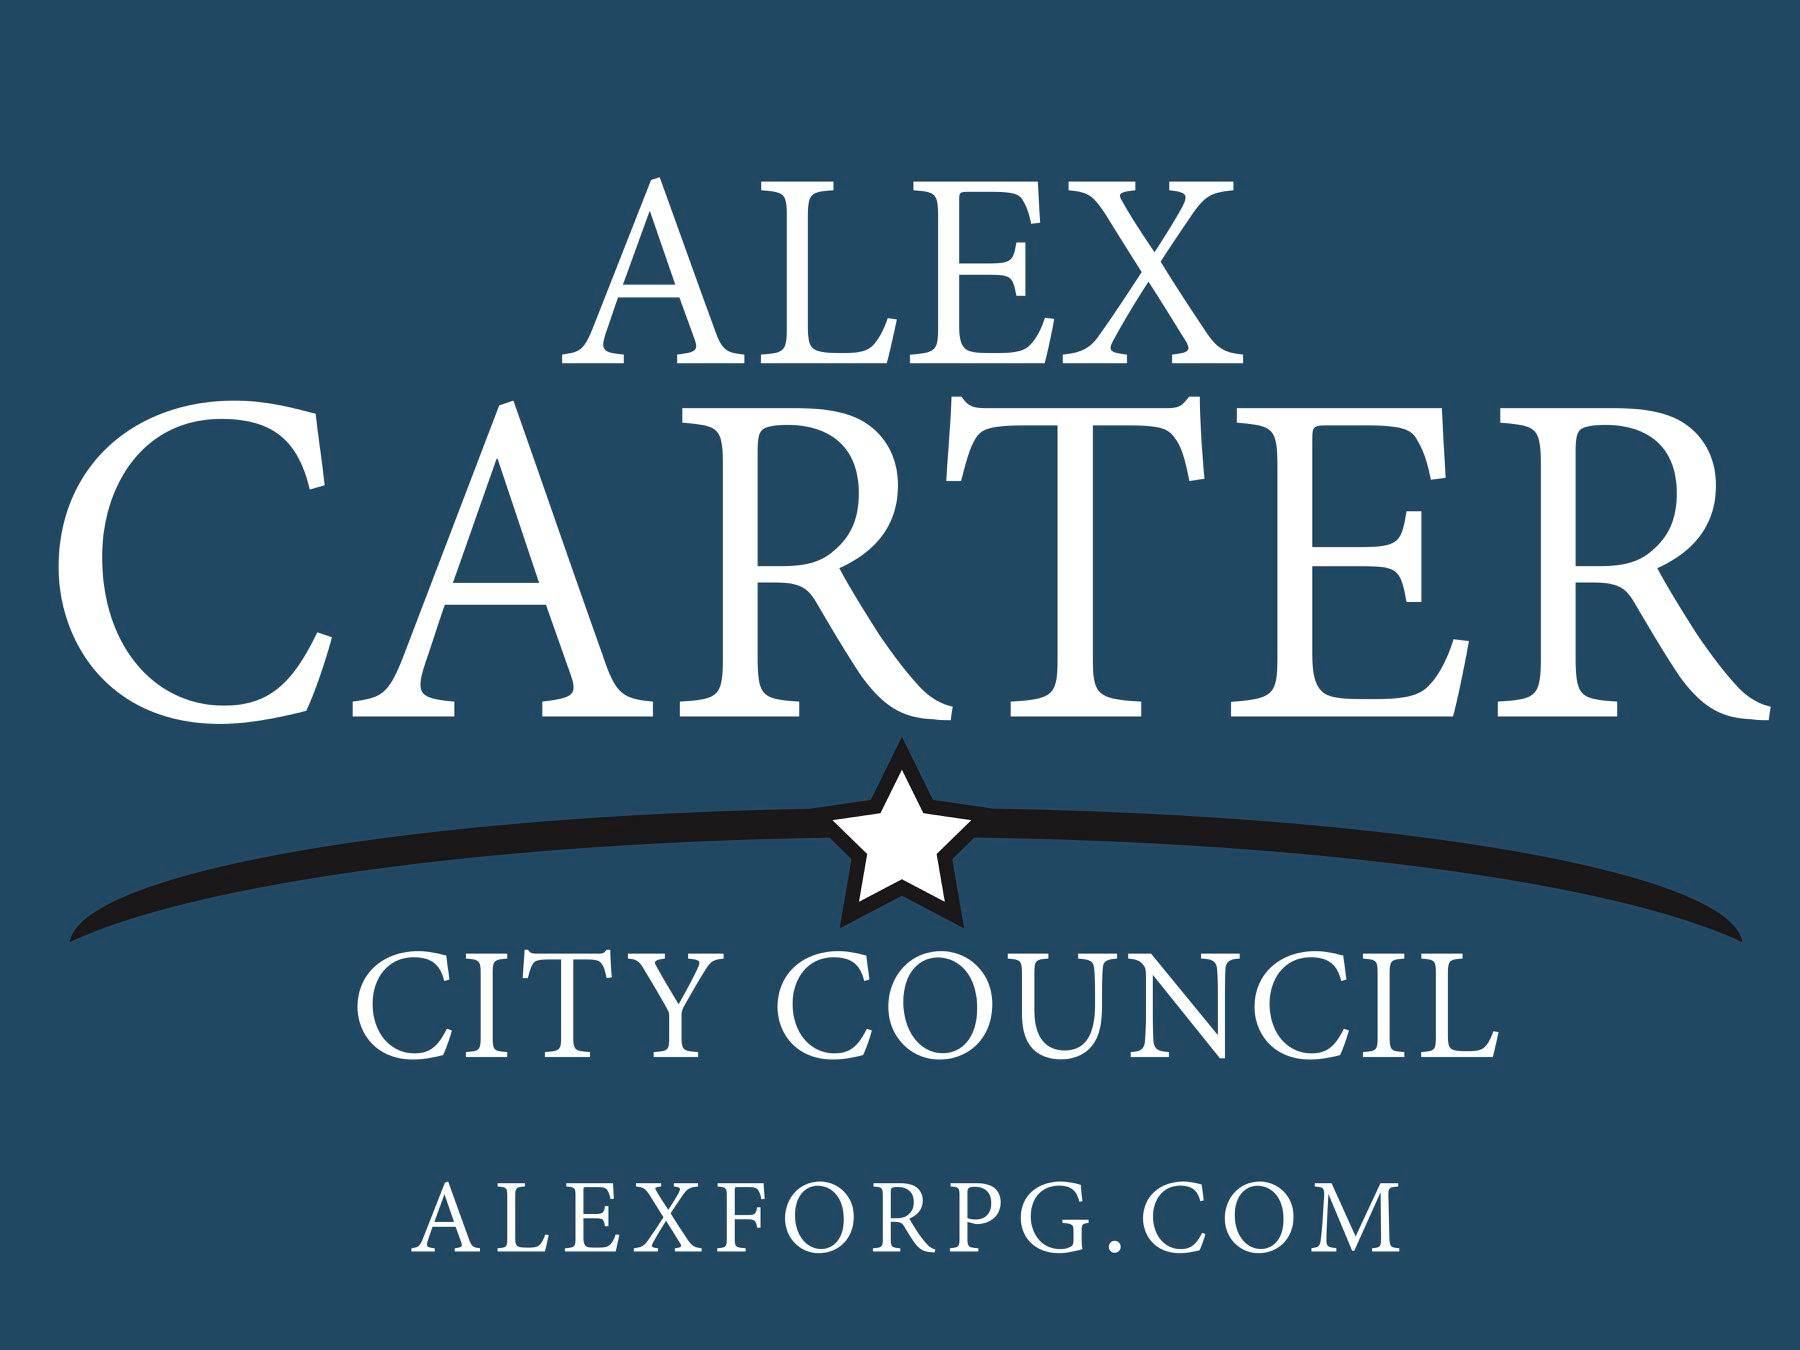 Alex Carter | City Council